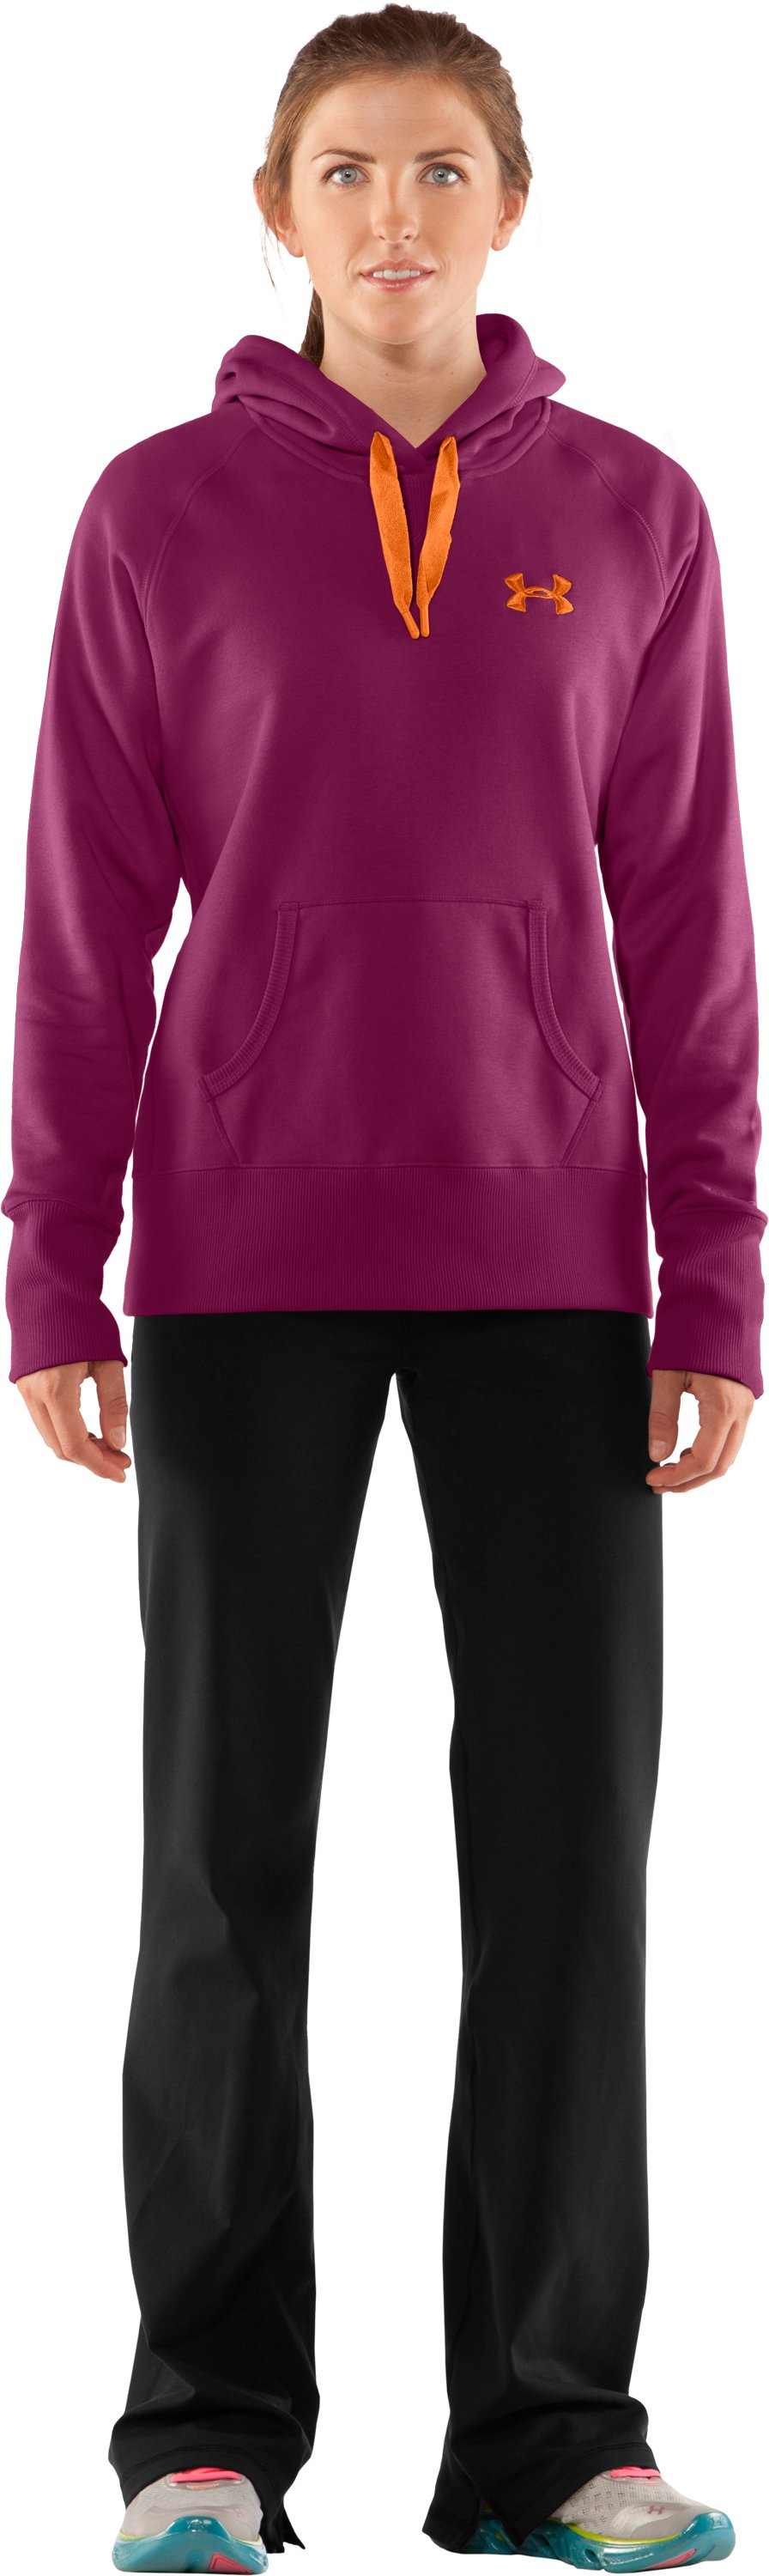 Women's Charged Cotton® Storm Hoodie, Rosewood